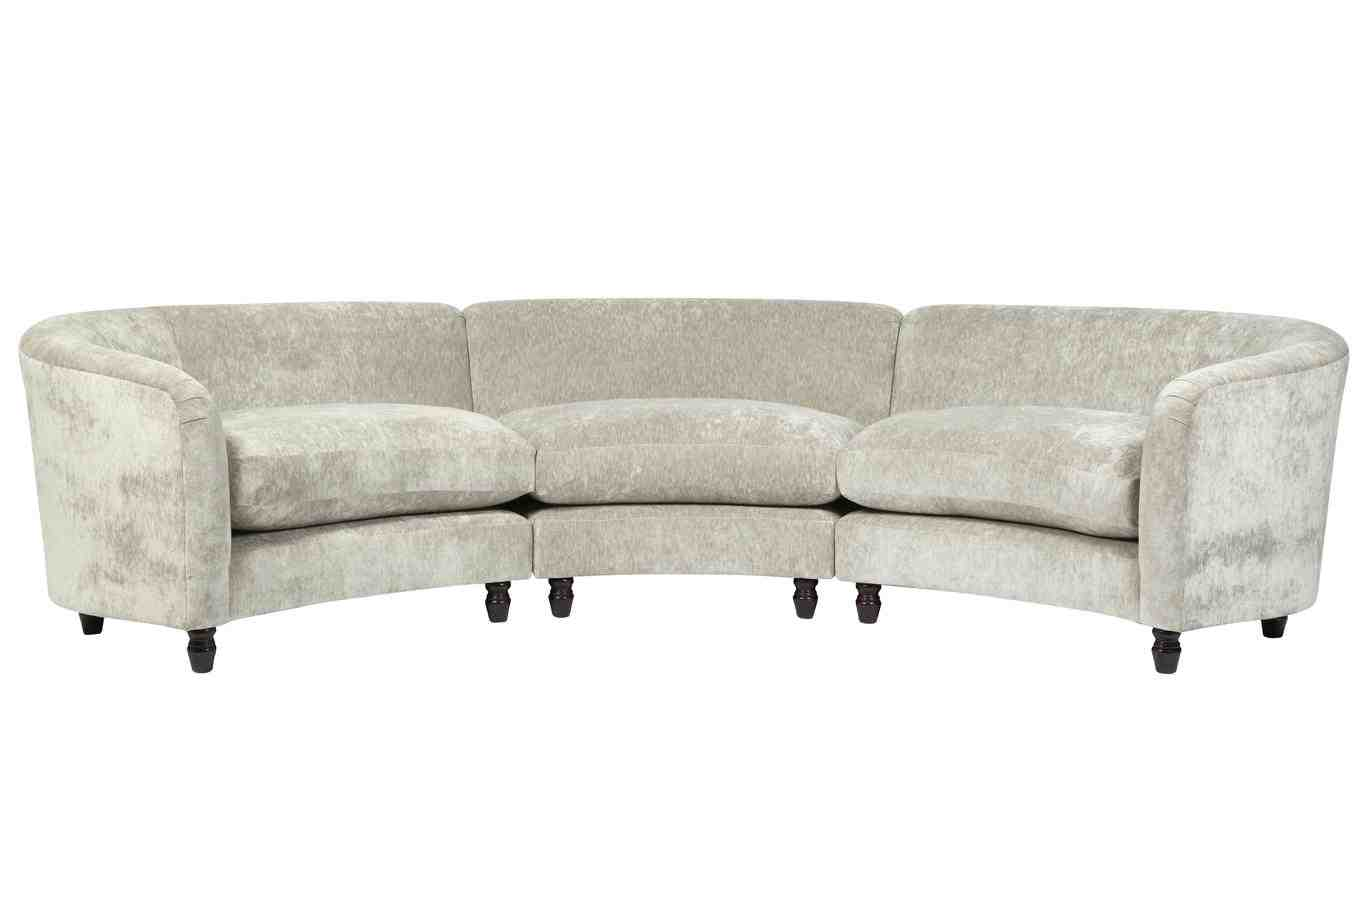 Curve Sofas Italian Curved Sofa At 1stdibs Custom  : Small Curved Sectional Sofa from honansantiques.com size 1372 x 912 jpeg 27kB